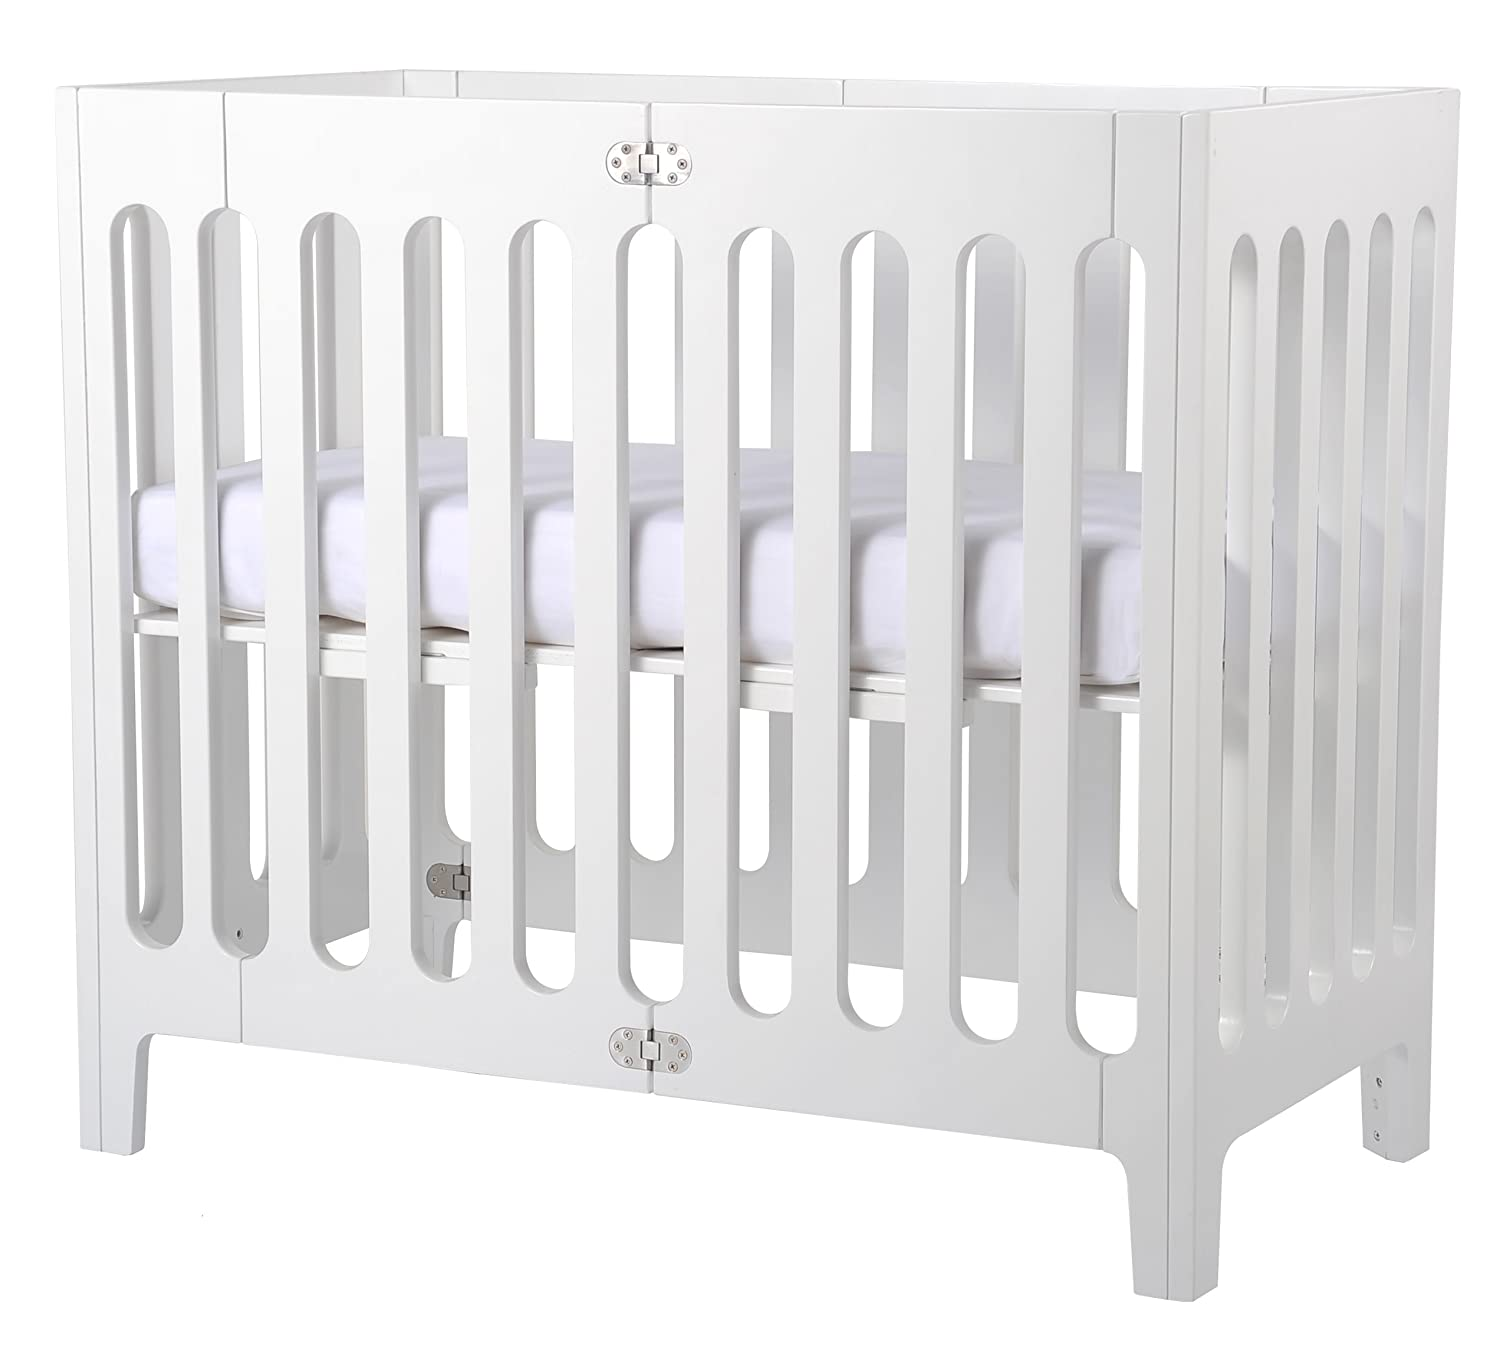 bloom alma urban cot (coconut white) amazoncouk baby -